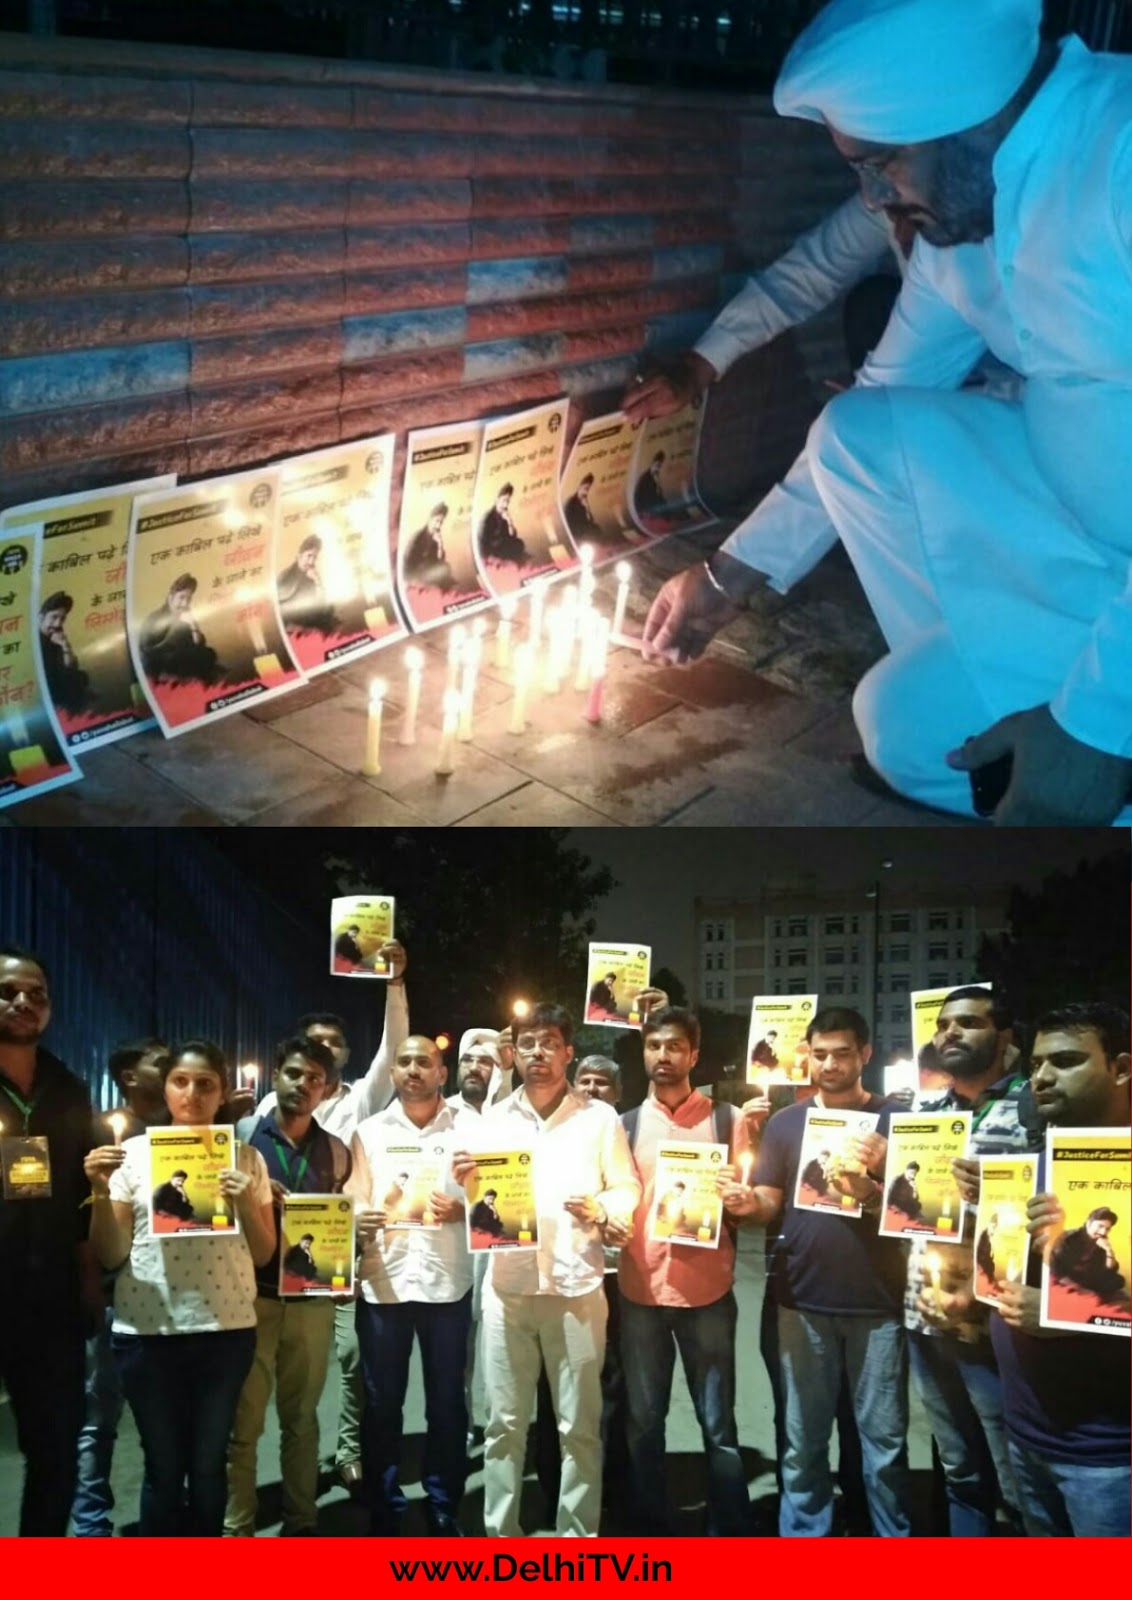 Yuva hallabol, SSC protest team, justice for sumit, sumit ko Shradananjali